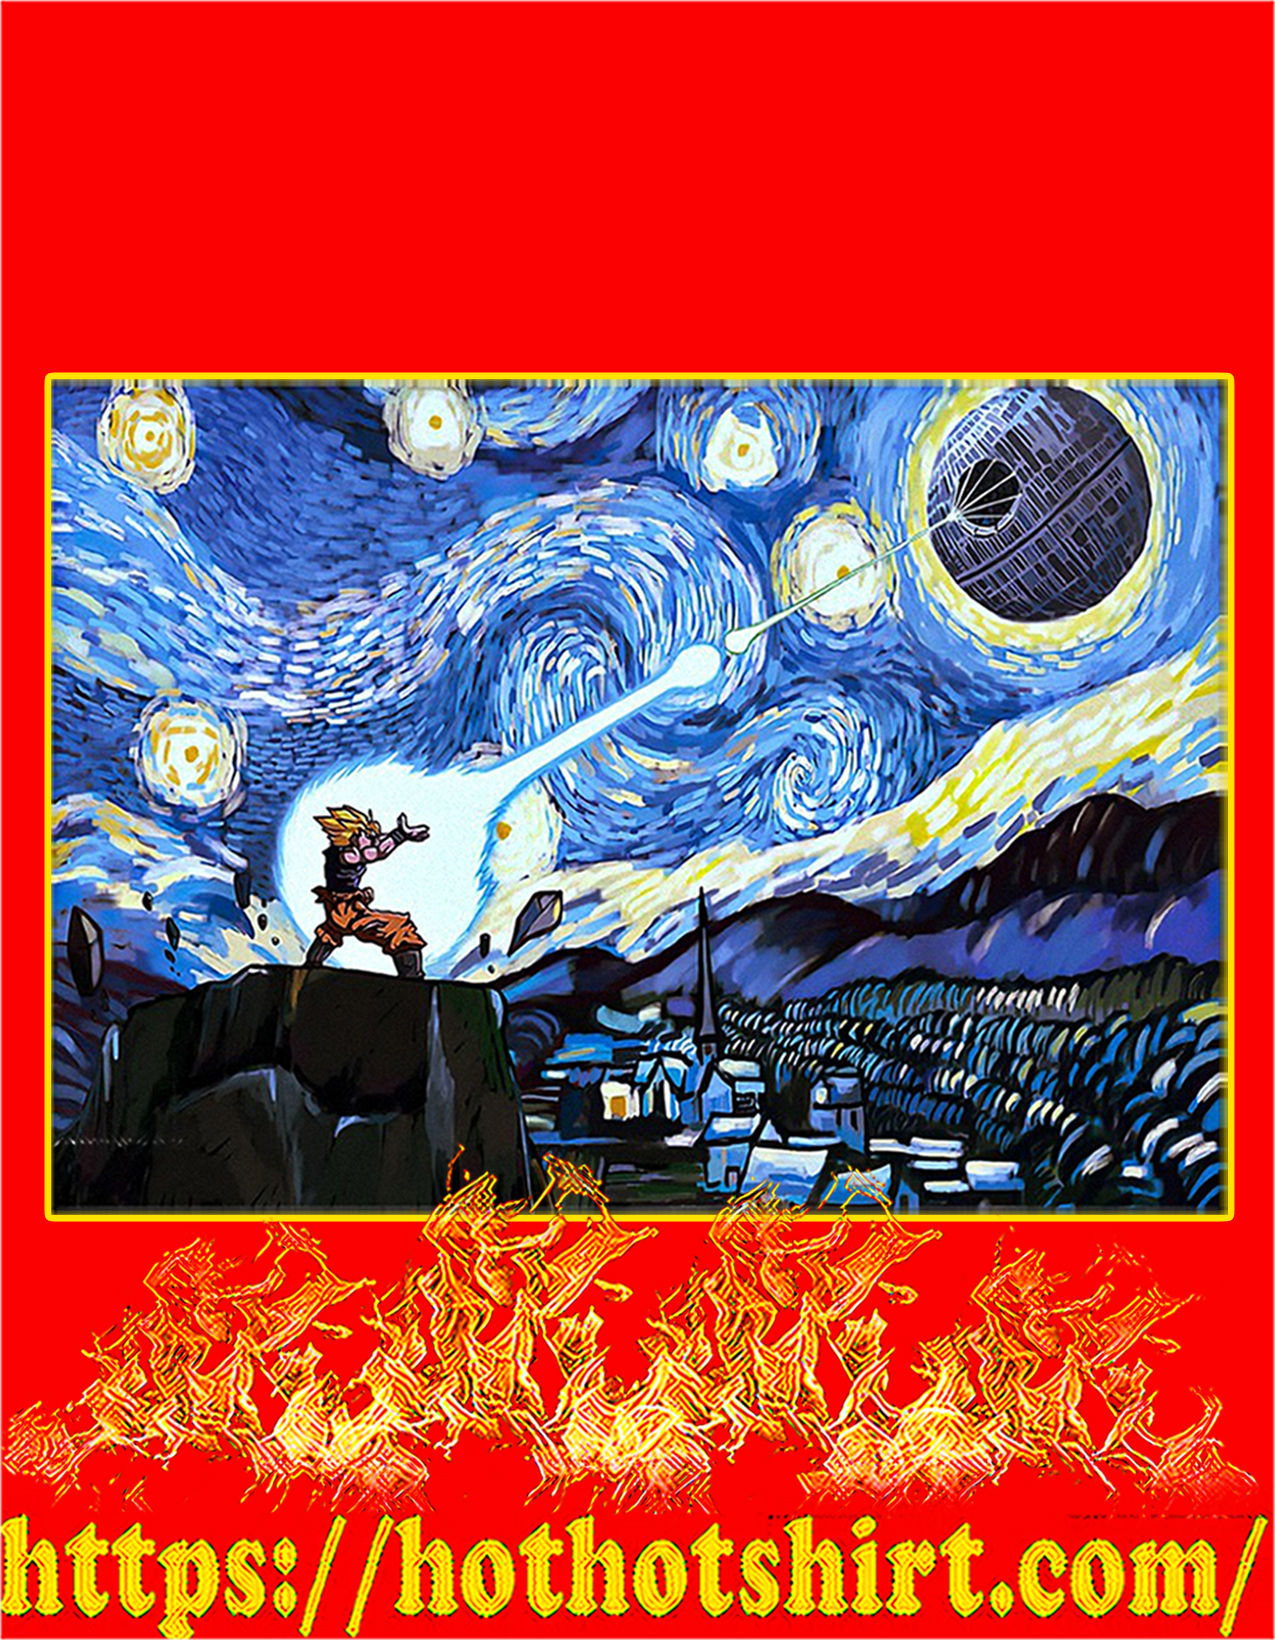 Goku vs Death Star starry night van gogh poster - A2